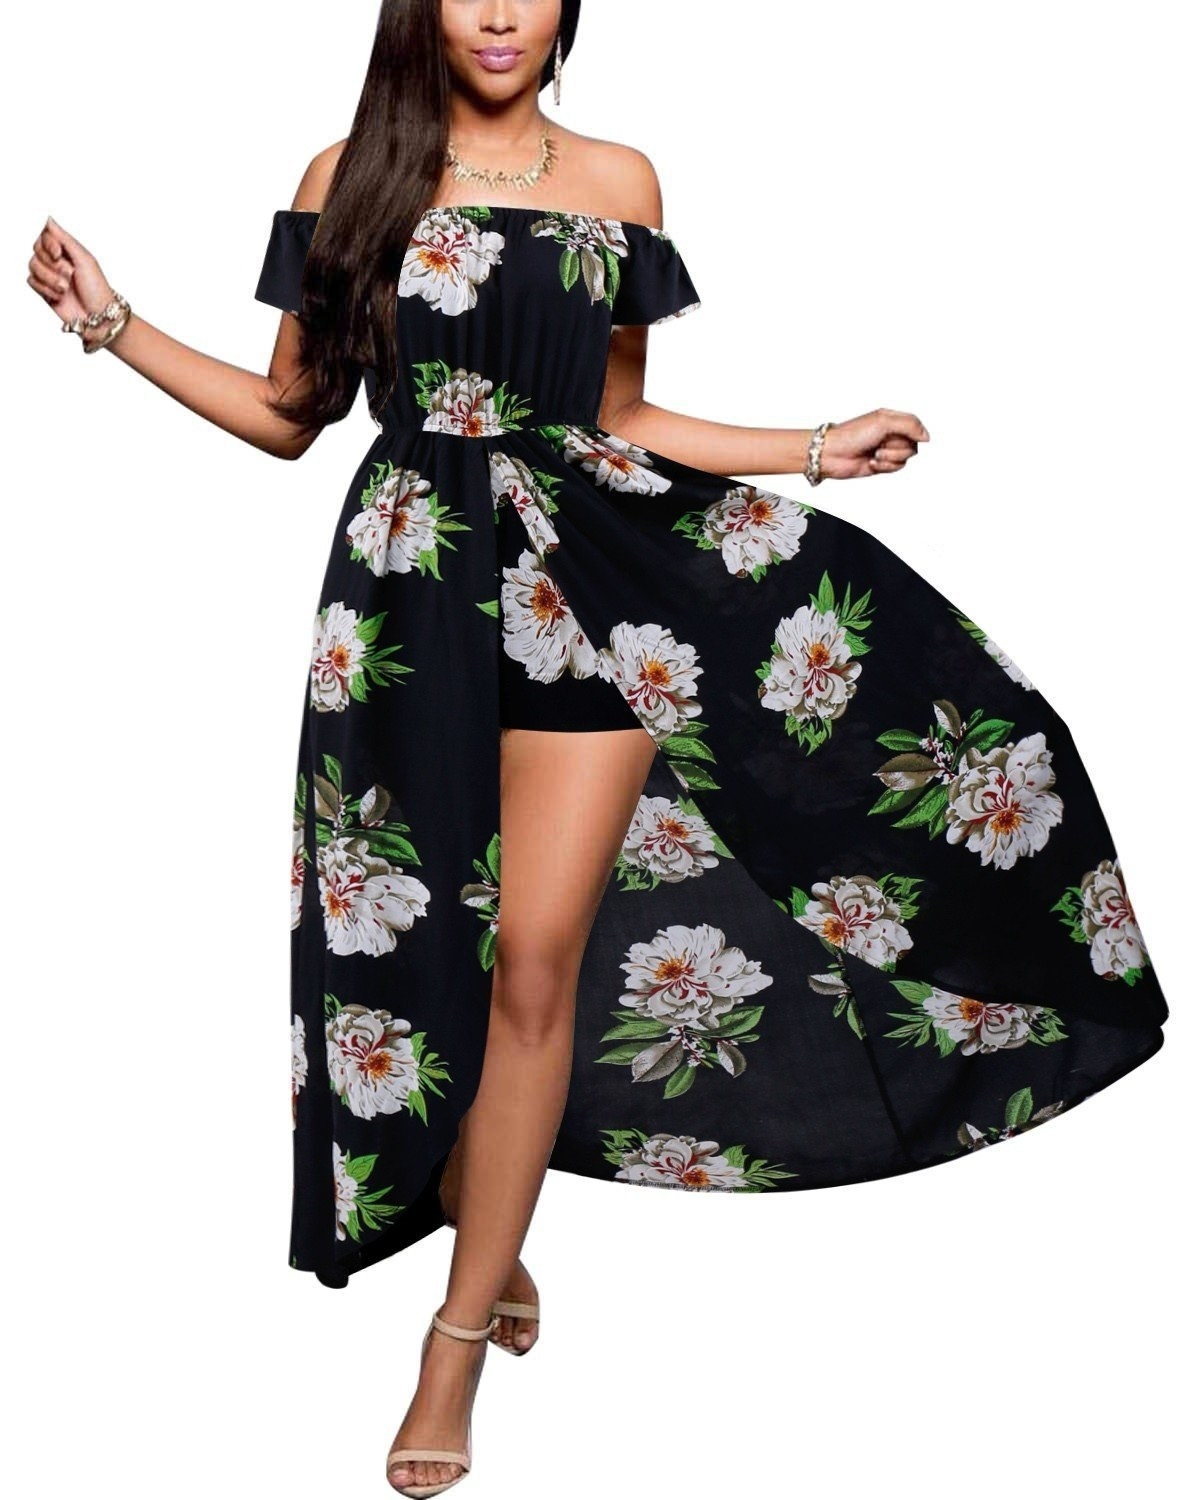 94d27da83cb6 A maxi dress with surprise shorts underneath so the wind can be your friend  instead of mortal enemy.